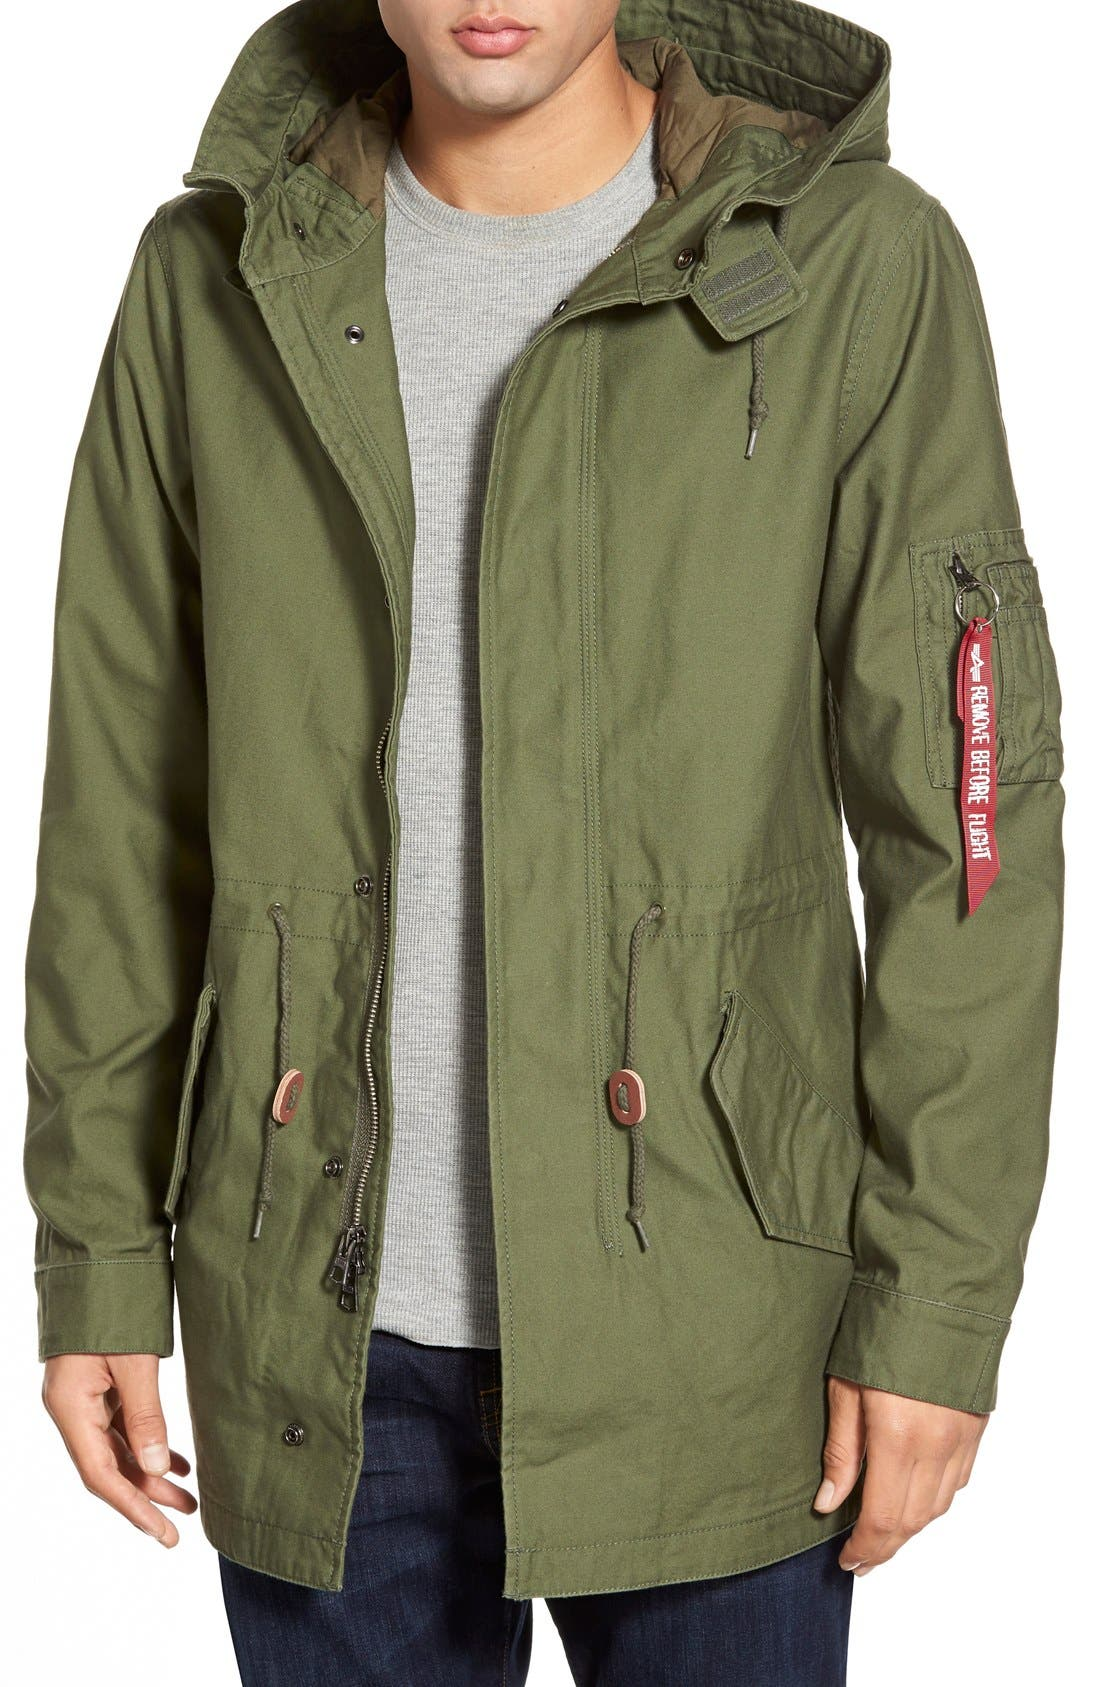 Green coat h and m